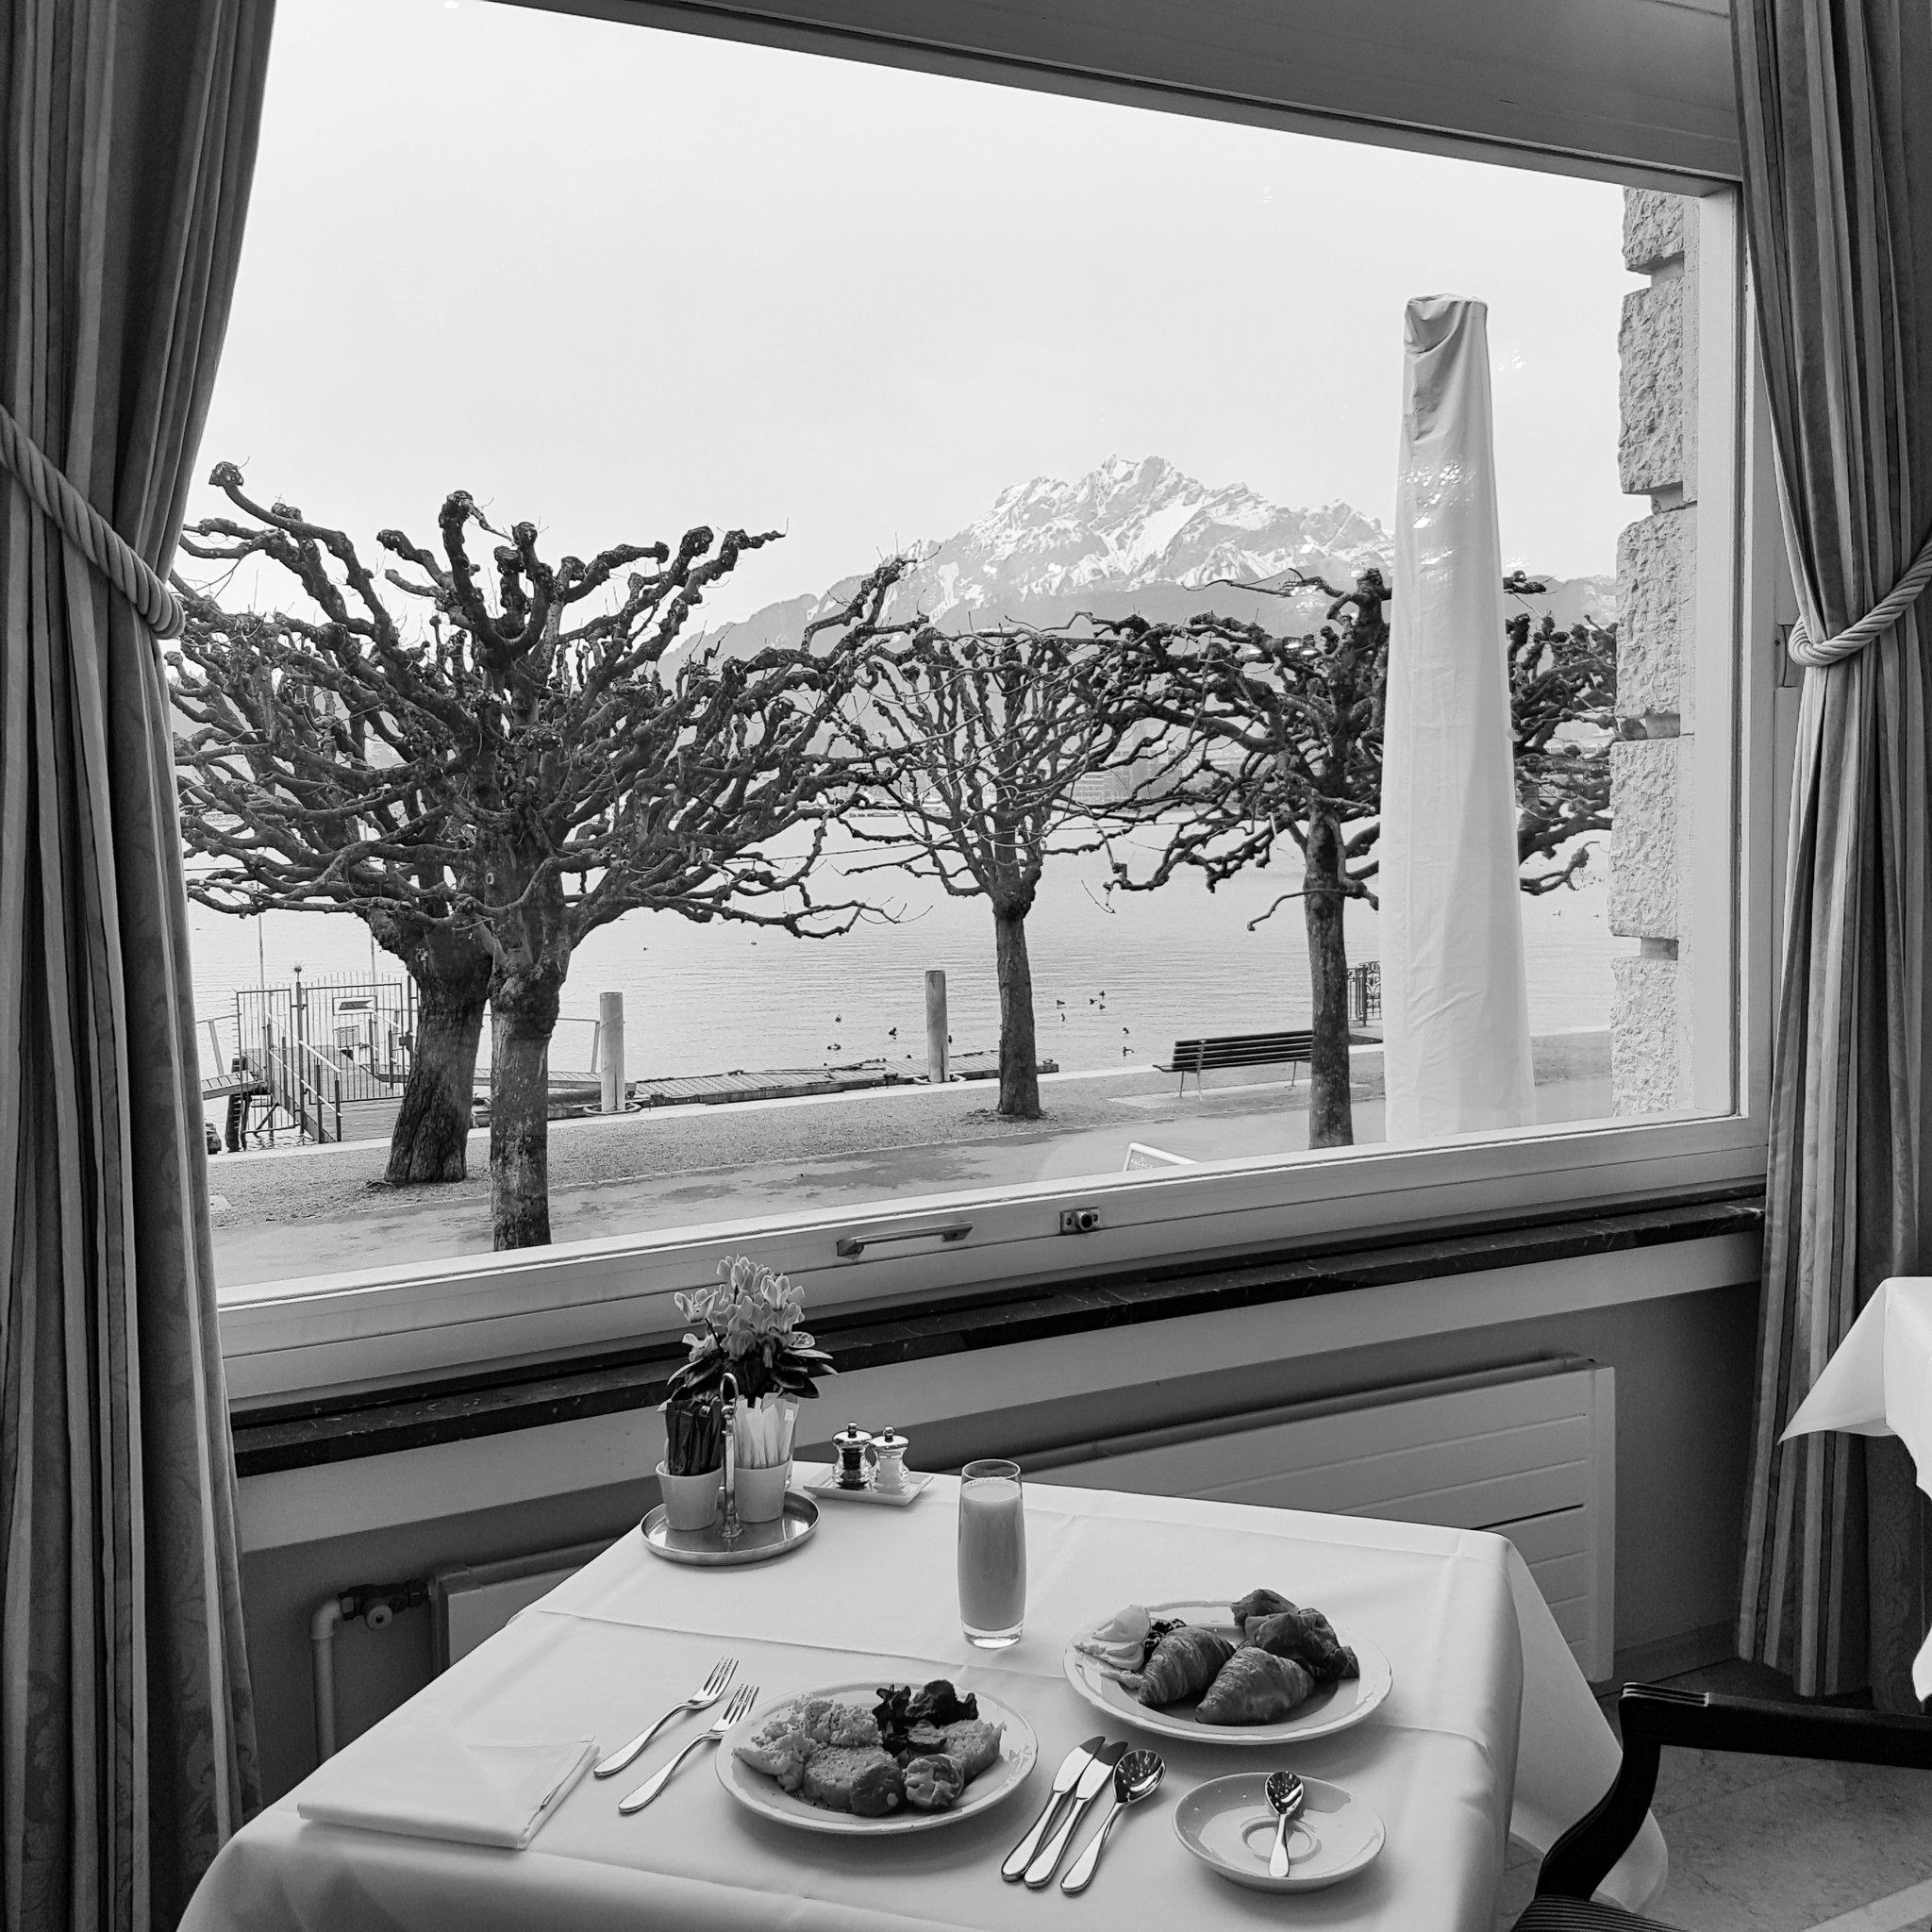 Feeling relaxed. View with Breakfast #Palace @I_love_Lucerne  @LuxuryGuideDE #InLoveWithSwitzerland https://t.co/Sn5JlvHiax